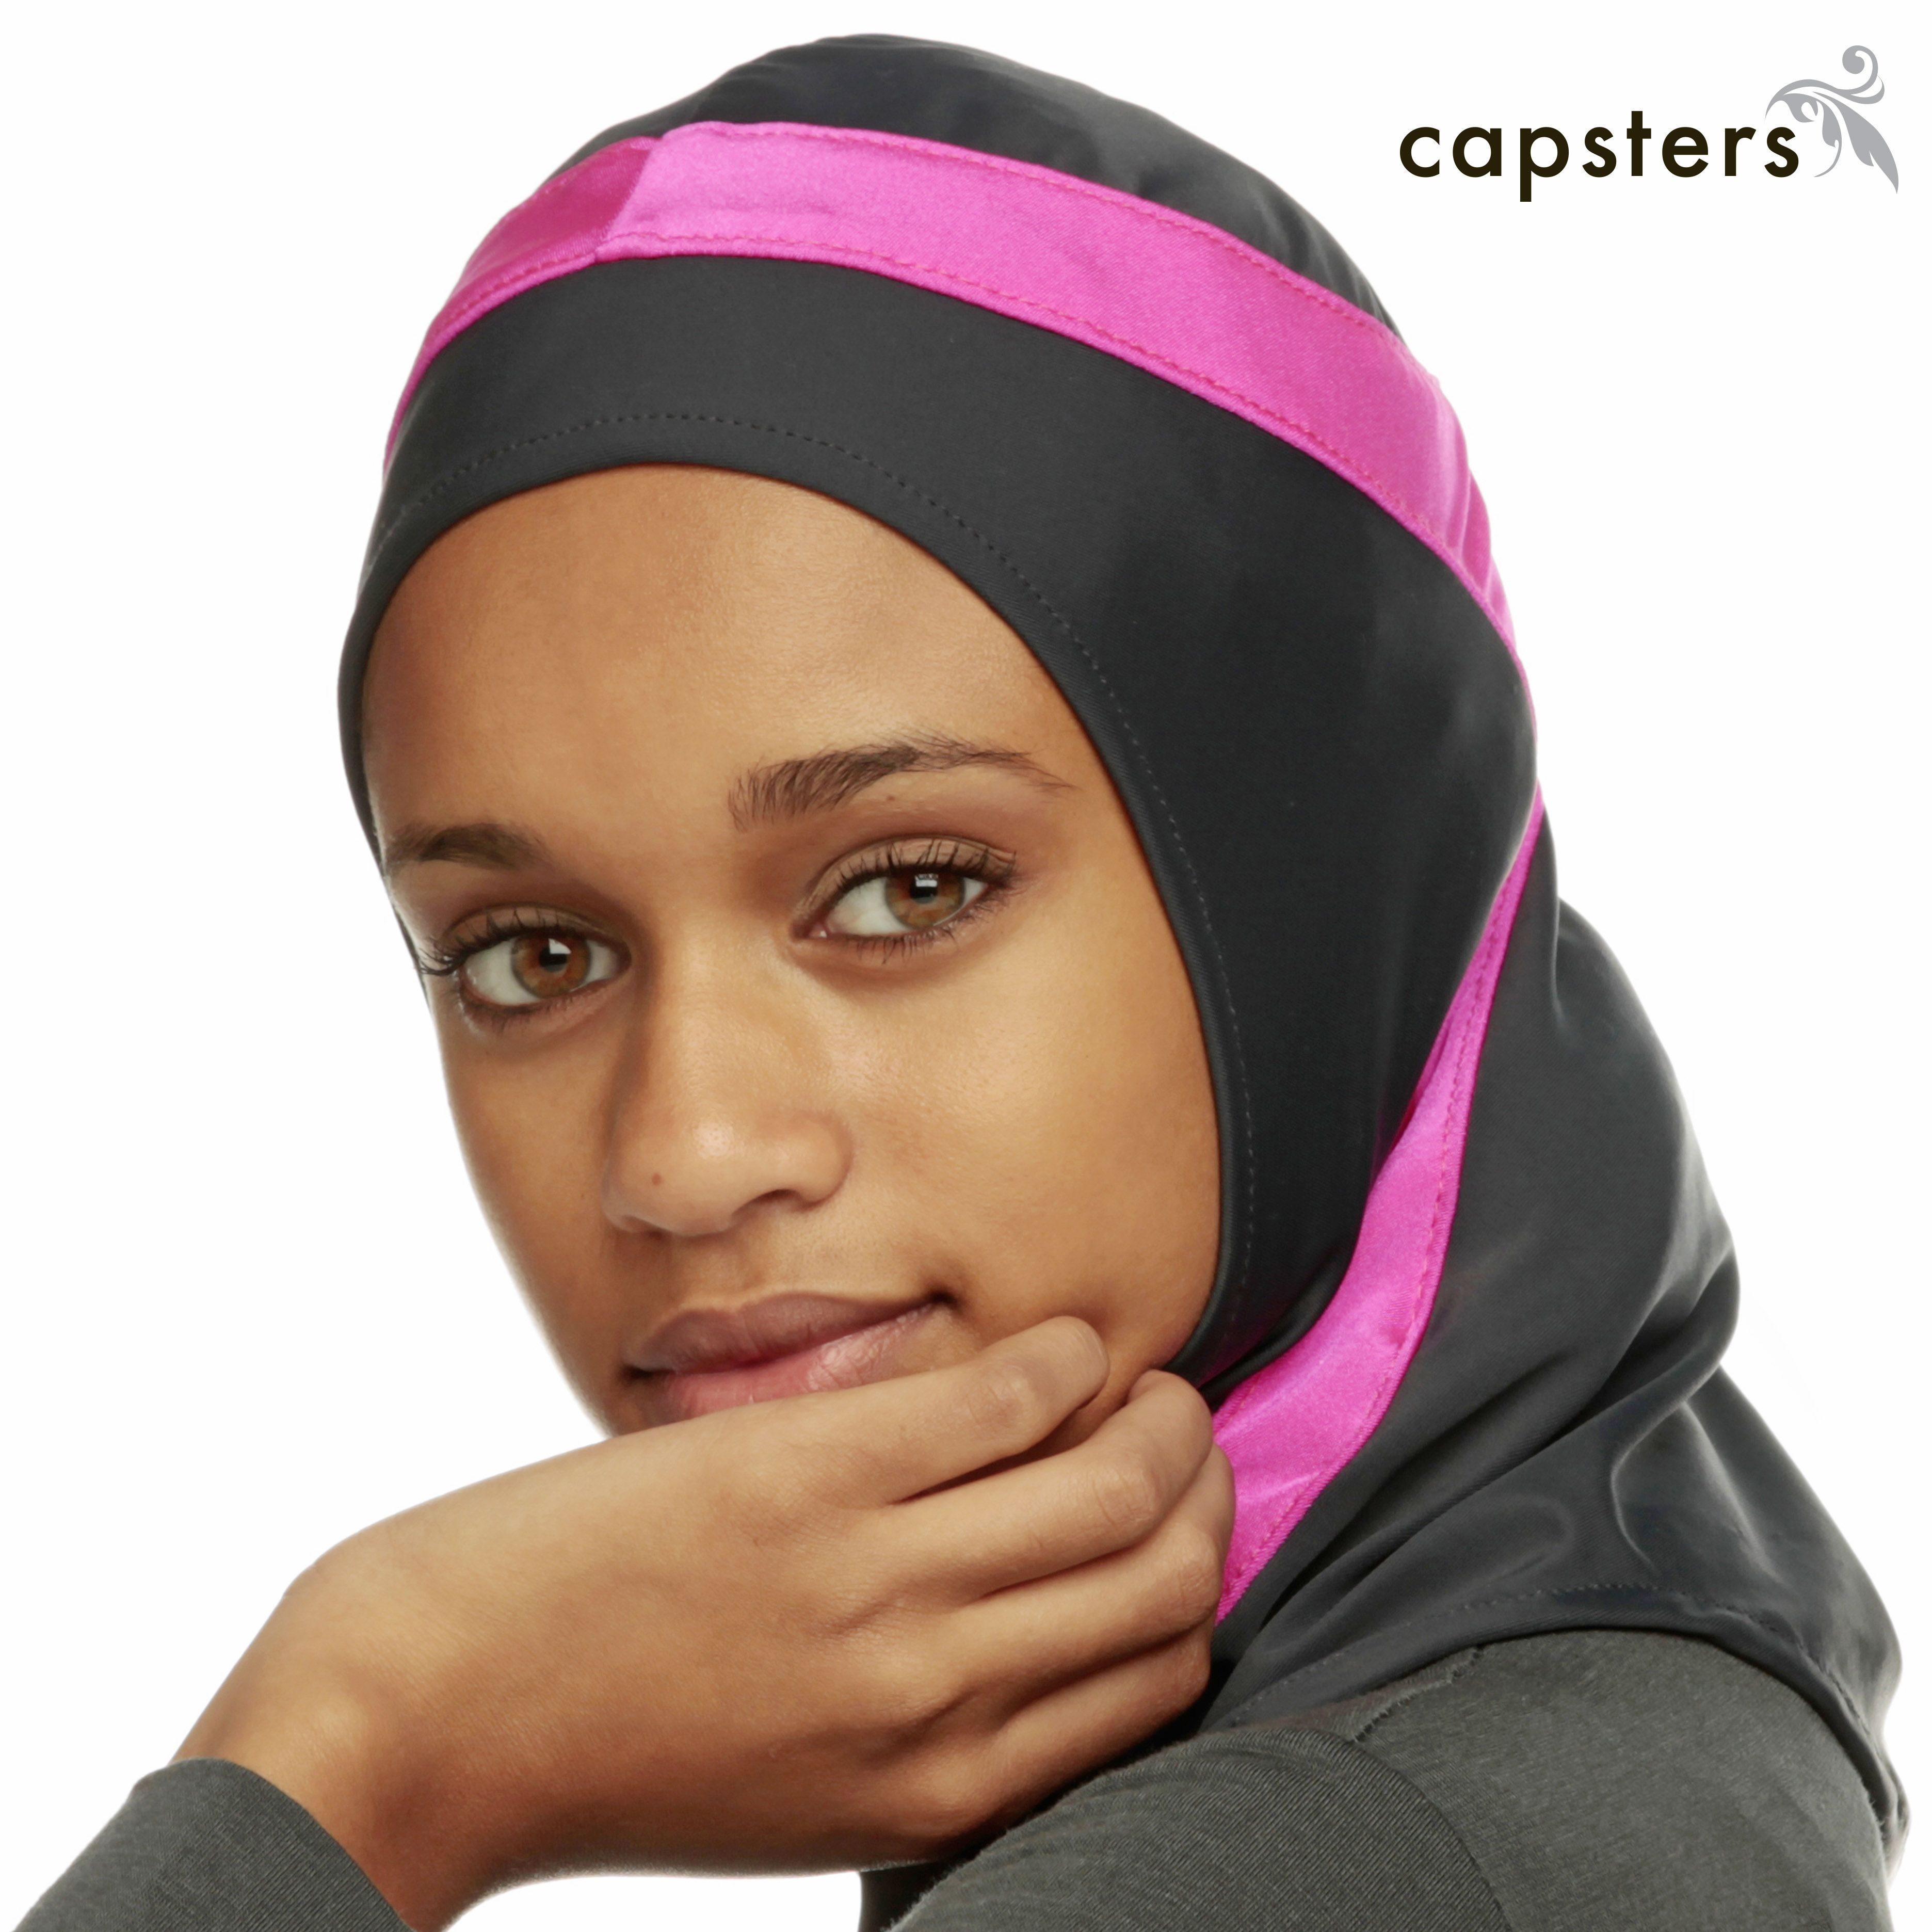 Pin By Capsters On Capsters Sports Hijabs